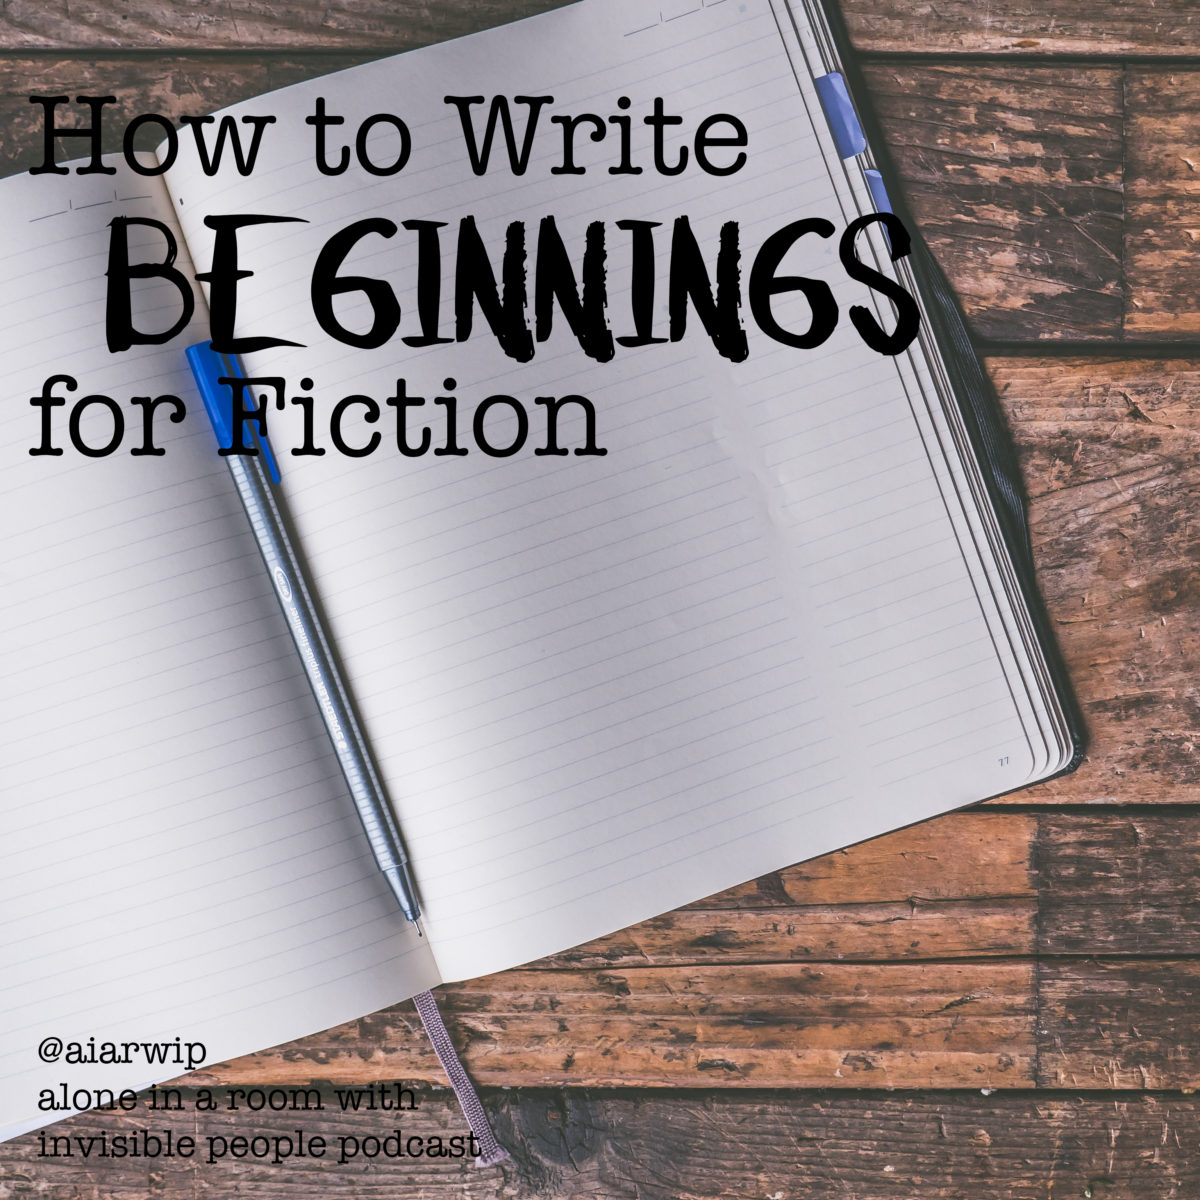 Episode 43: How to Write Beginnings for Fiction